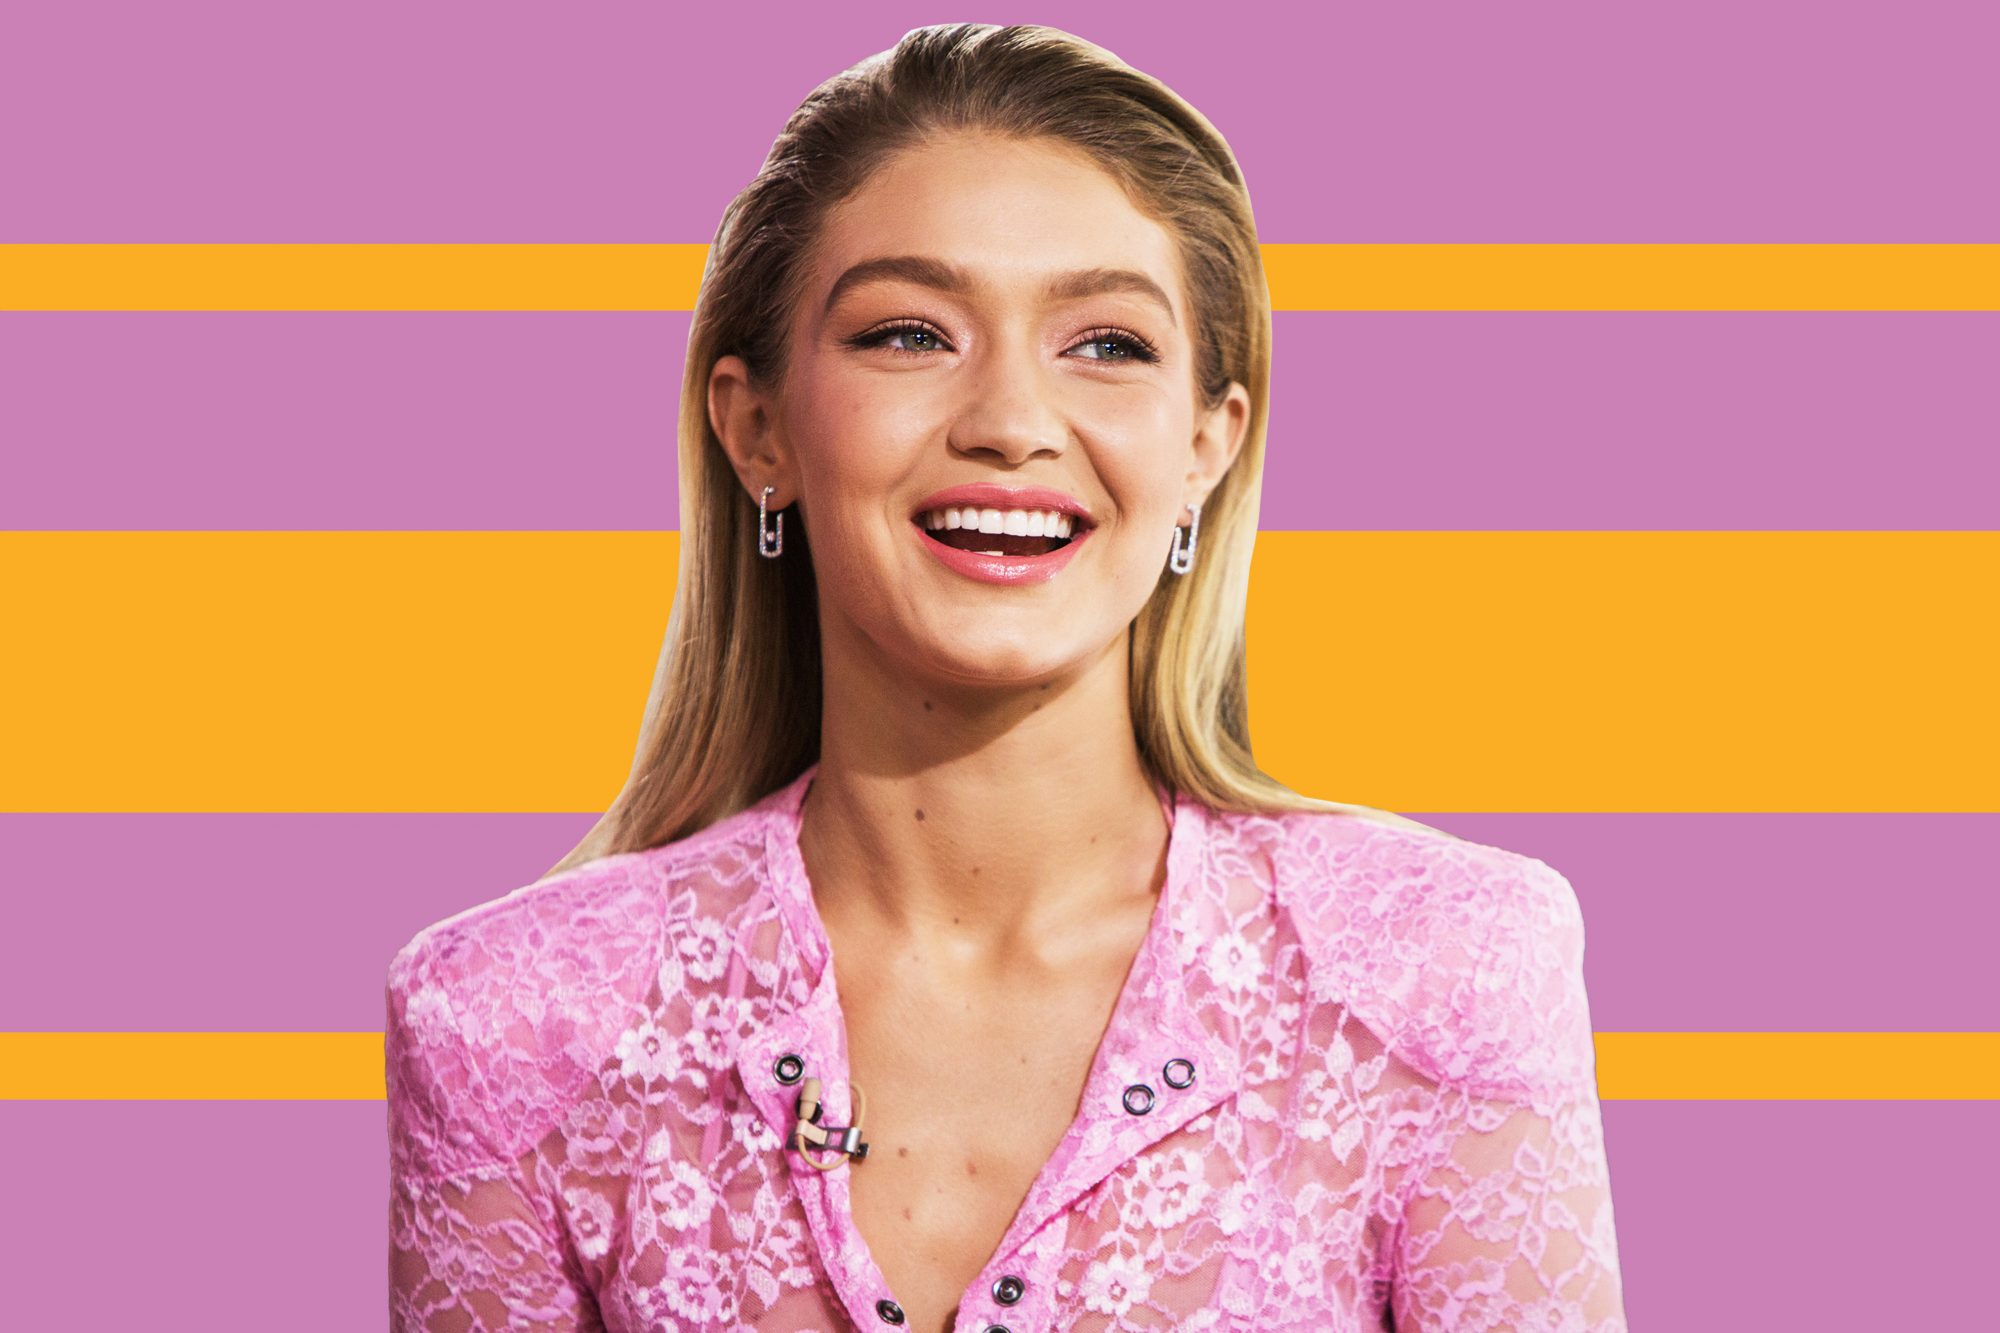 Gigi-Hadid-Neutrogena-Oil-Free-Eye-Makeup-from-Amazon-GettyImages-873728298